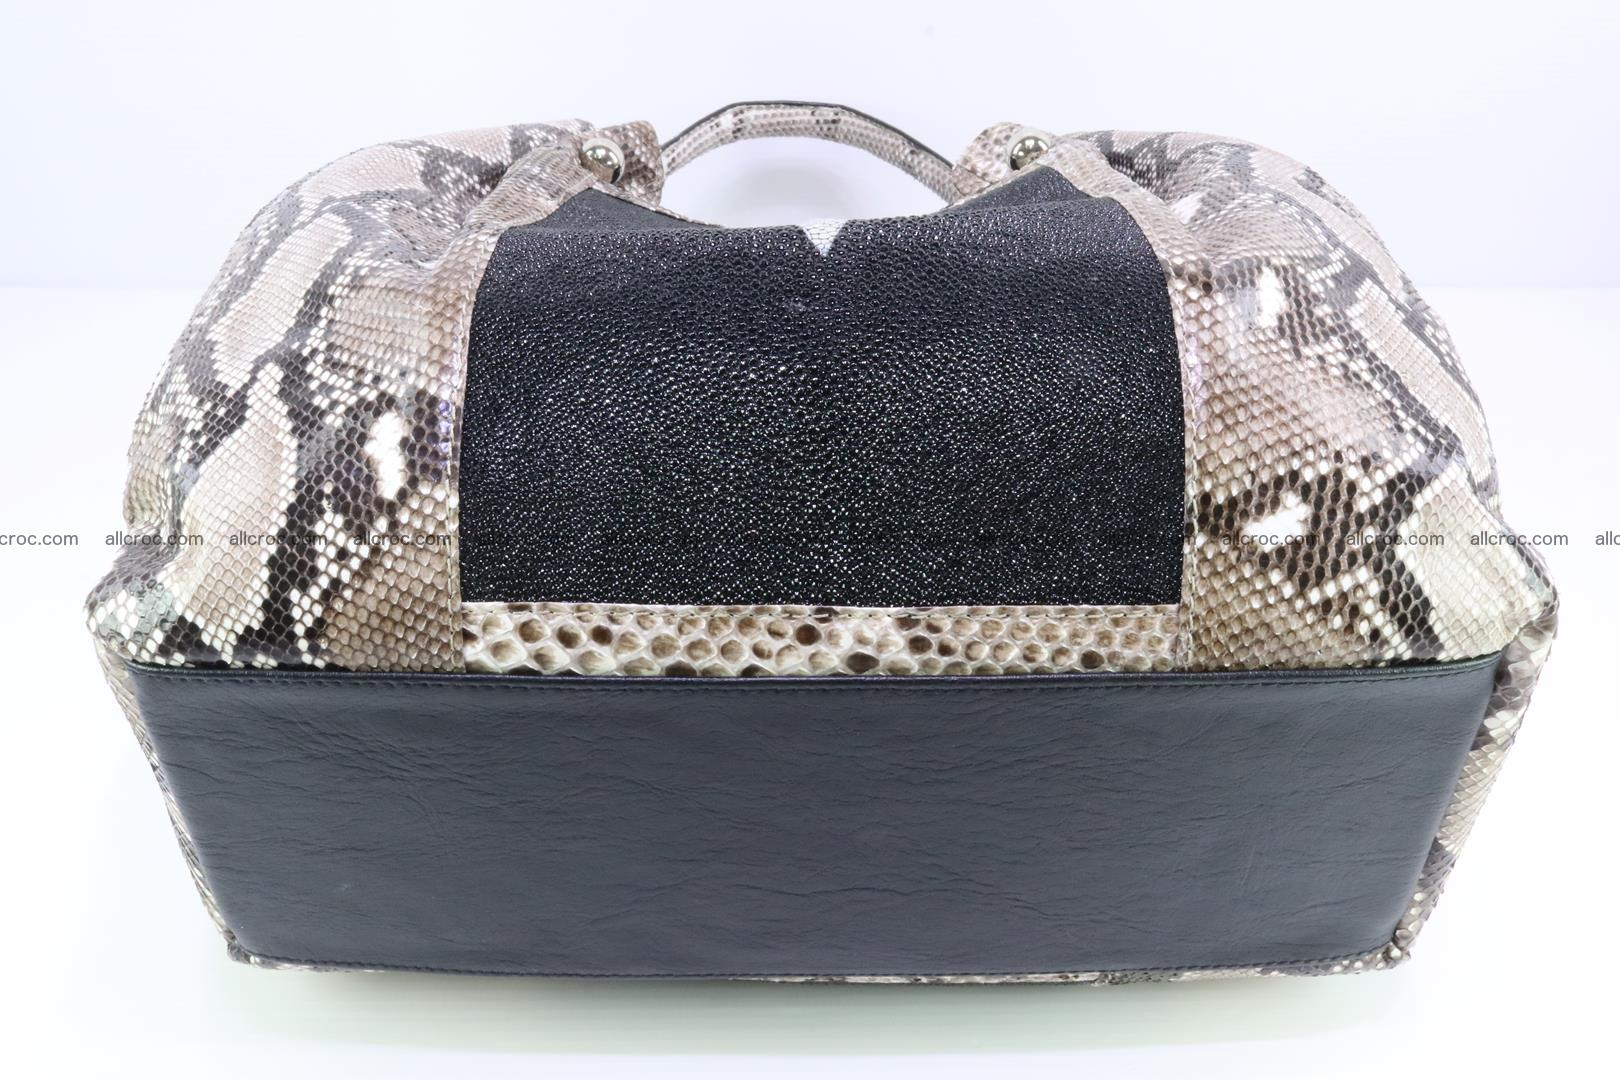 Handbag for lady from Python and stingray skin 167 Foto 10